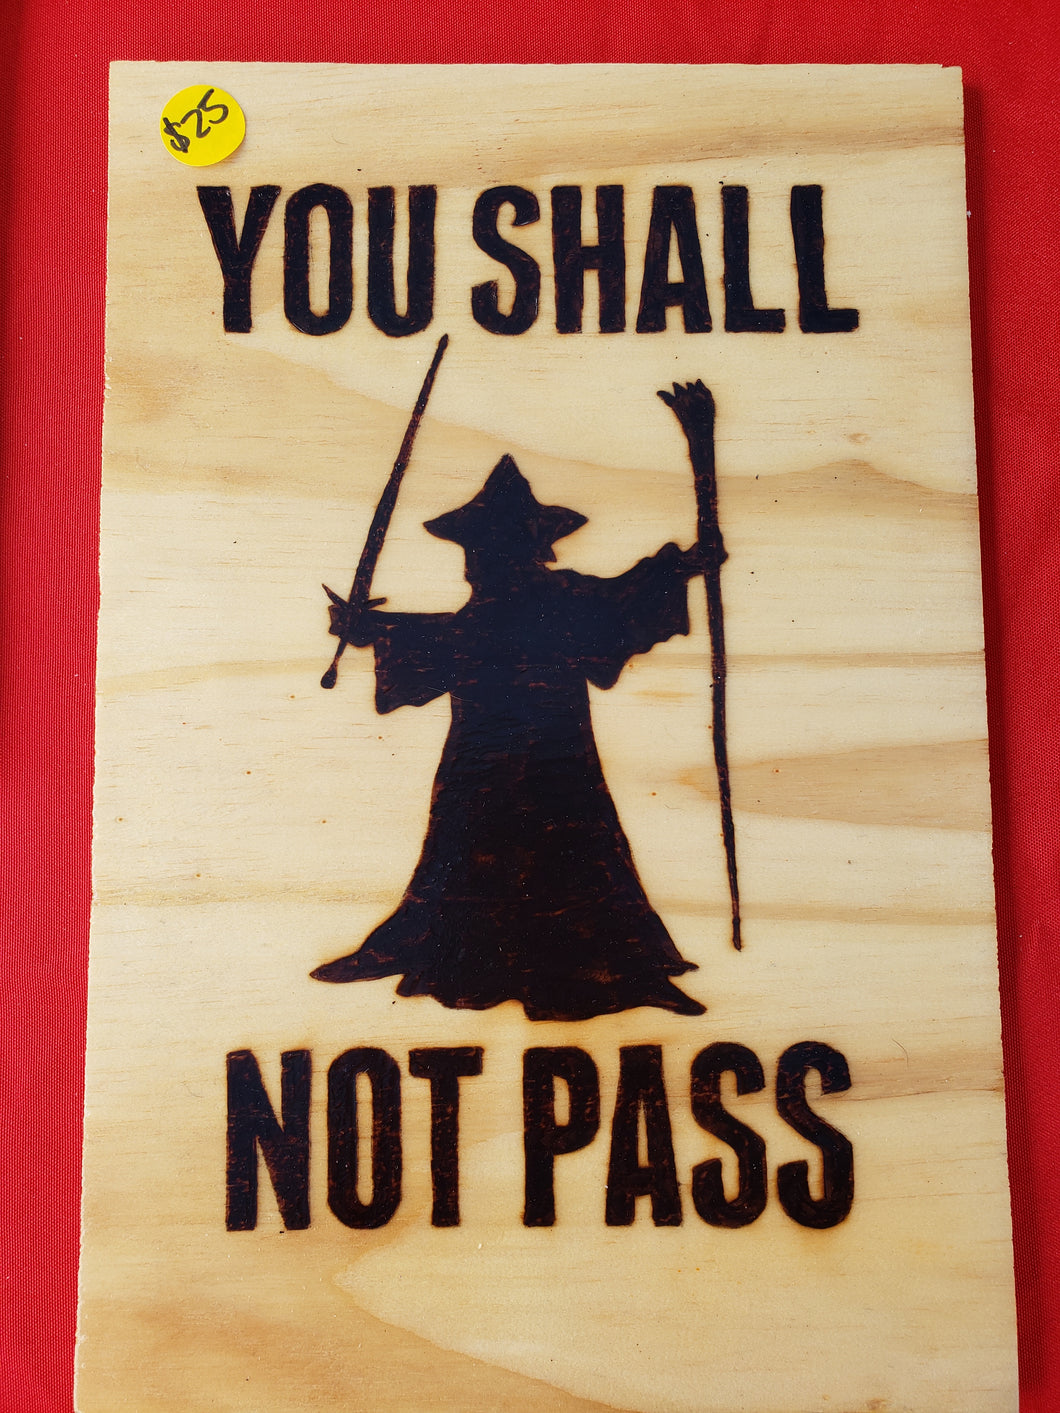 You shall not pass - Odin's Eye Art,  - woodburning, Odin's Eye Art - Odin's Eye Art